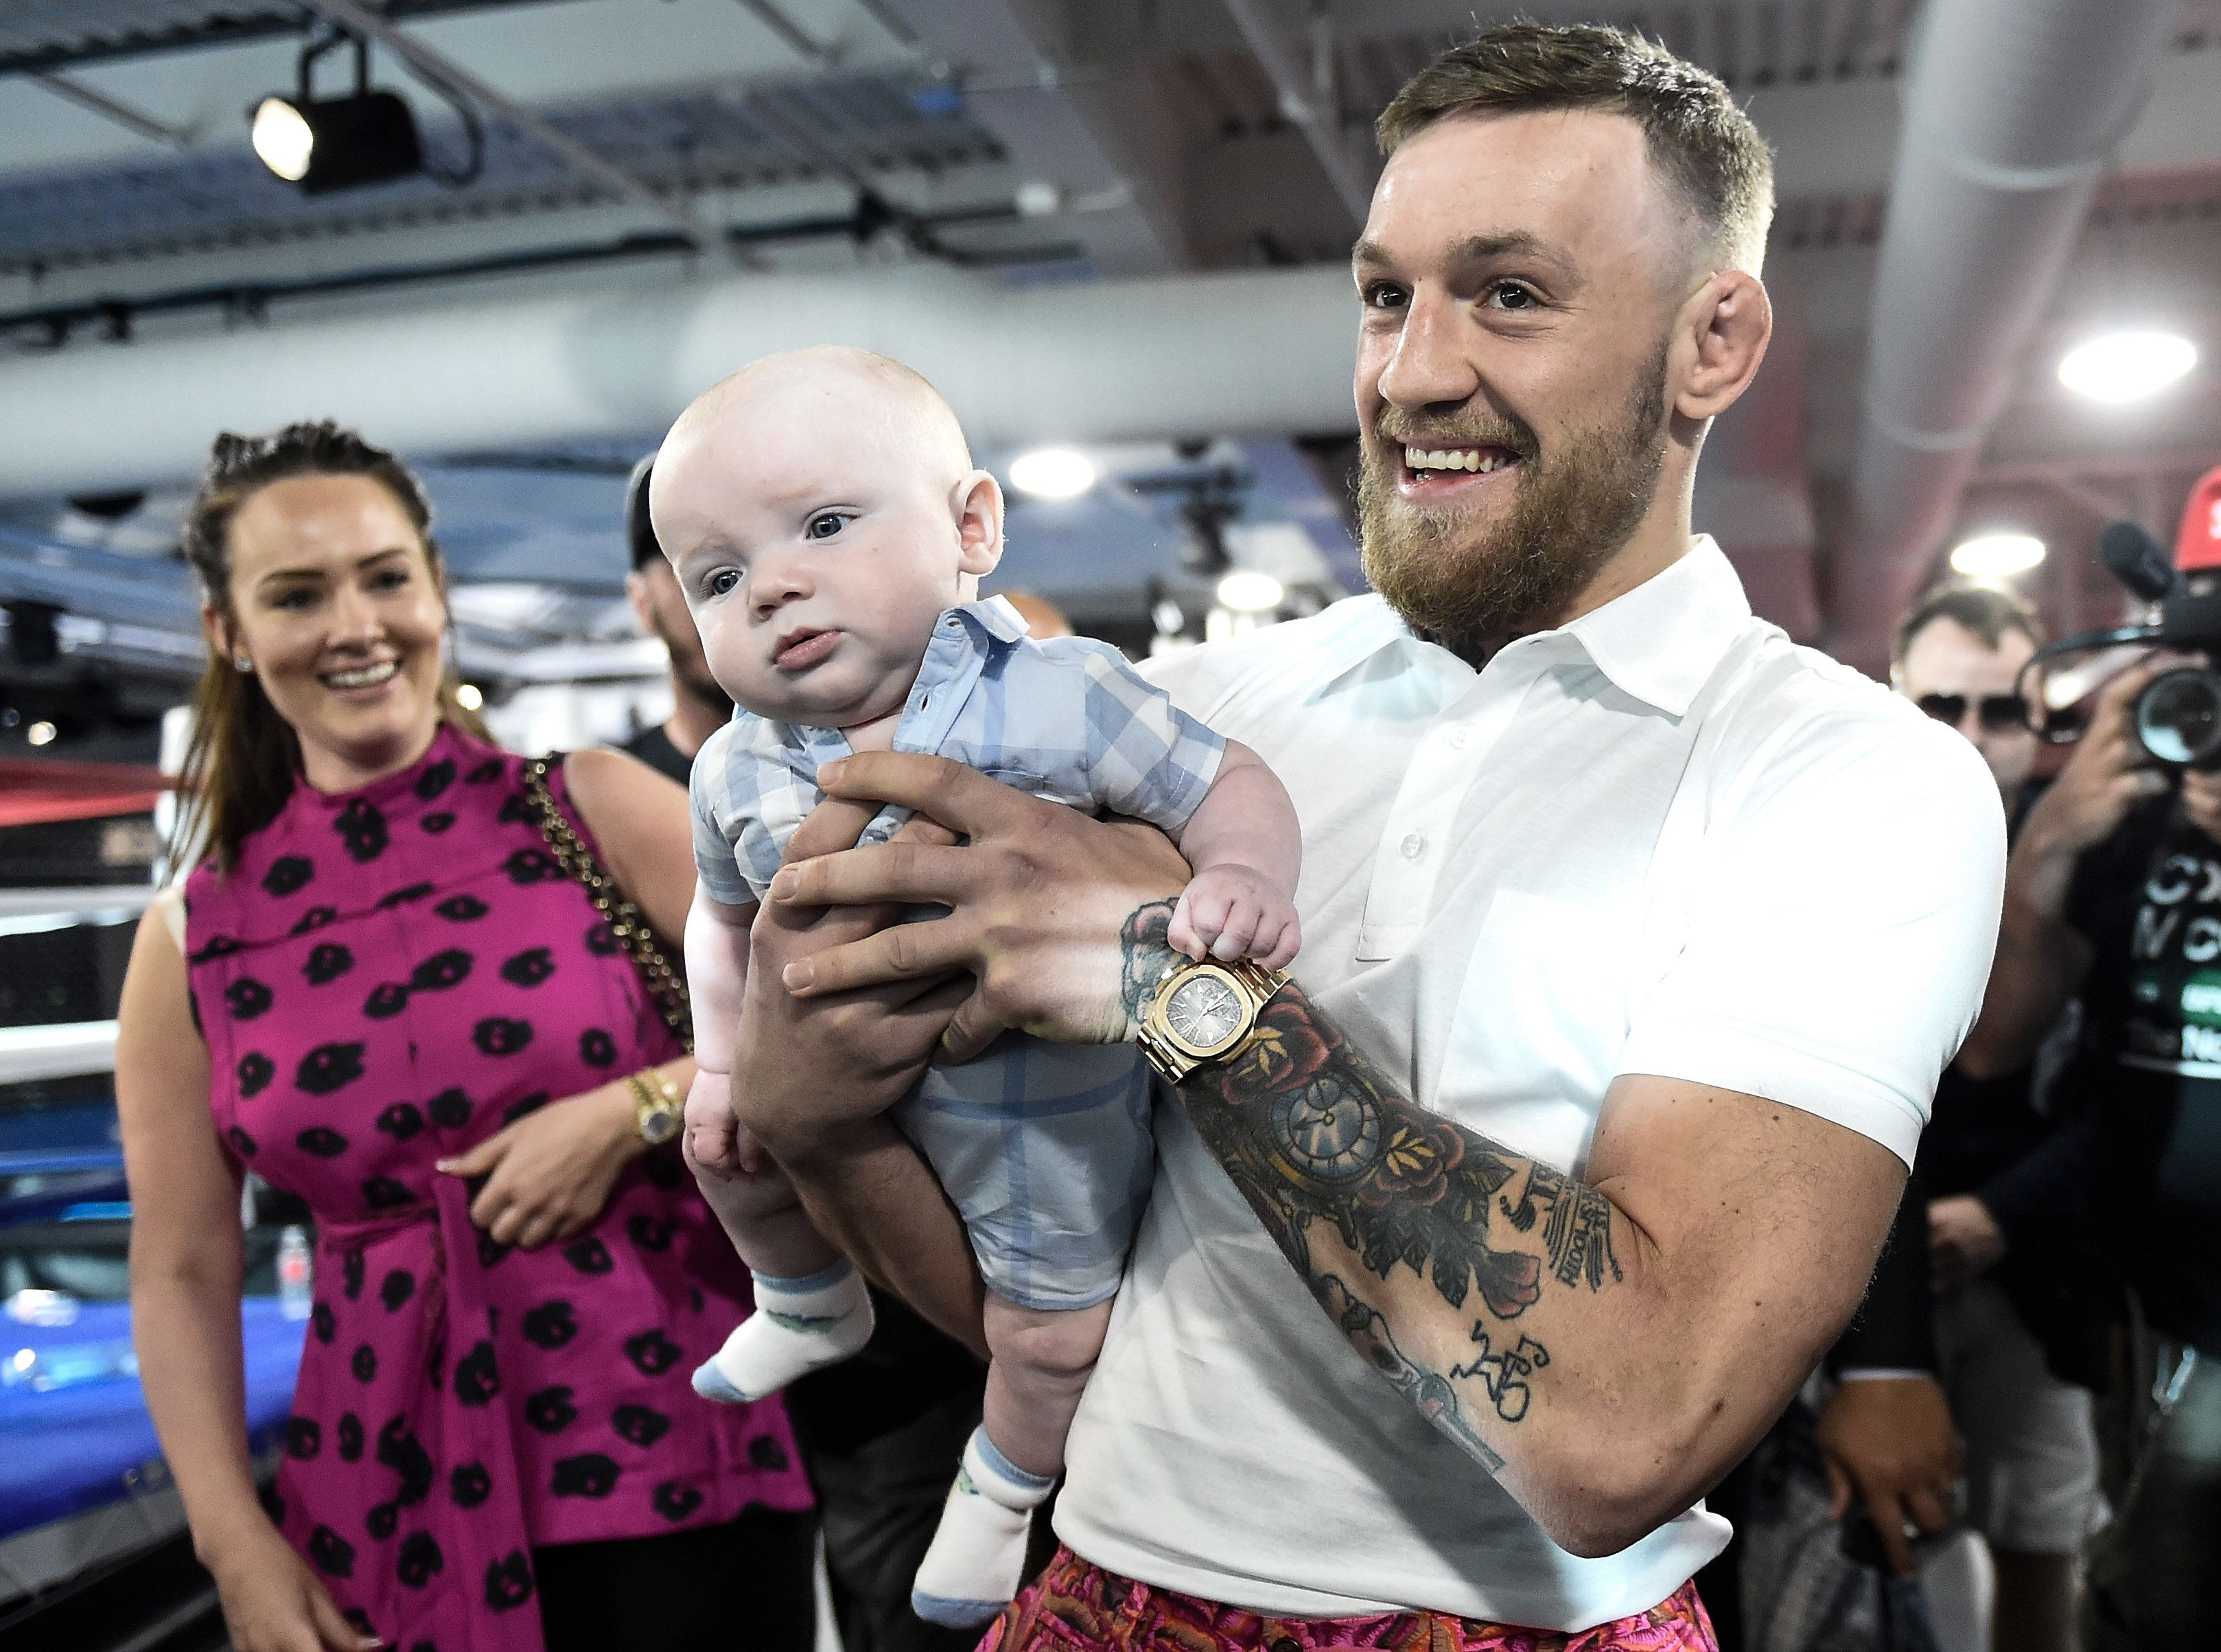 LAS VEGAS, NV - AUGUST 11:  UFC lightweight champion Conor McGregor carries his son Conor McGregor Junior during a media workout at the UFC Performance Institute on August 11, 2017 in Las Vegas, Nevada. McGregor will fight Floyd Mayweather Jr. in a boxing match at T-Mobile Arena on August 26 in Las Vegas. (Photo by Brandon Magnus/Zuffa LLC/Zuffa LLC via Getty Images)